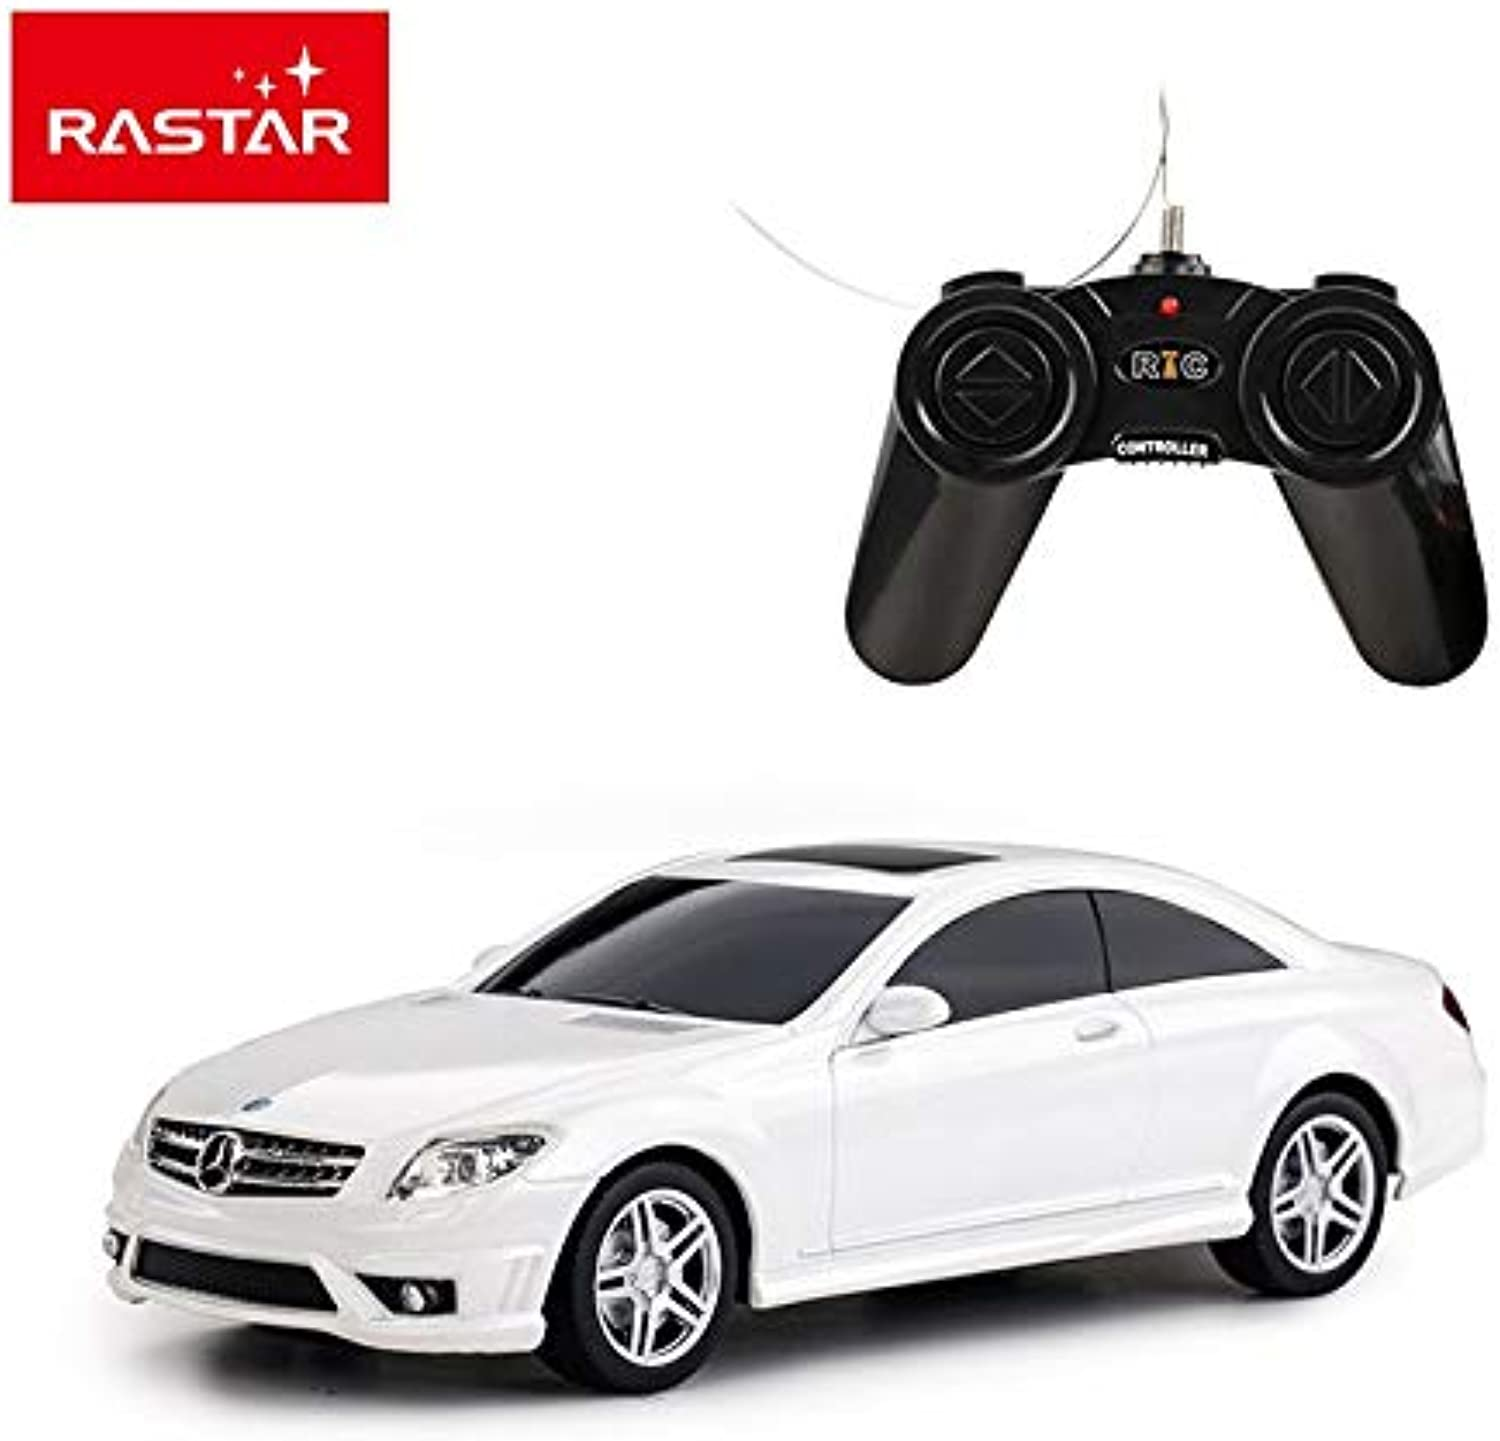 Generic Rastar Licensed rc car Mercedes CL63 AMG 1 24 Radio Control Hobby Sports car 34200 White